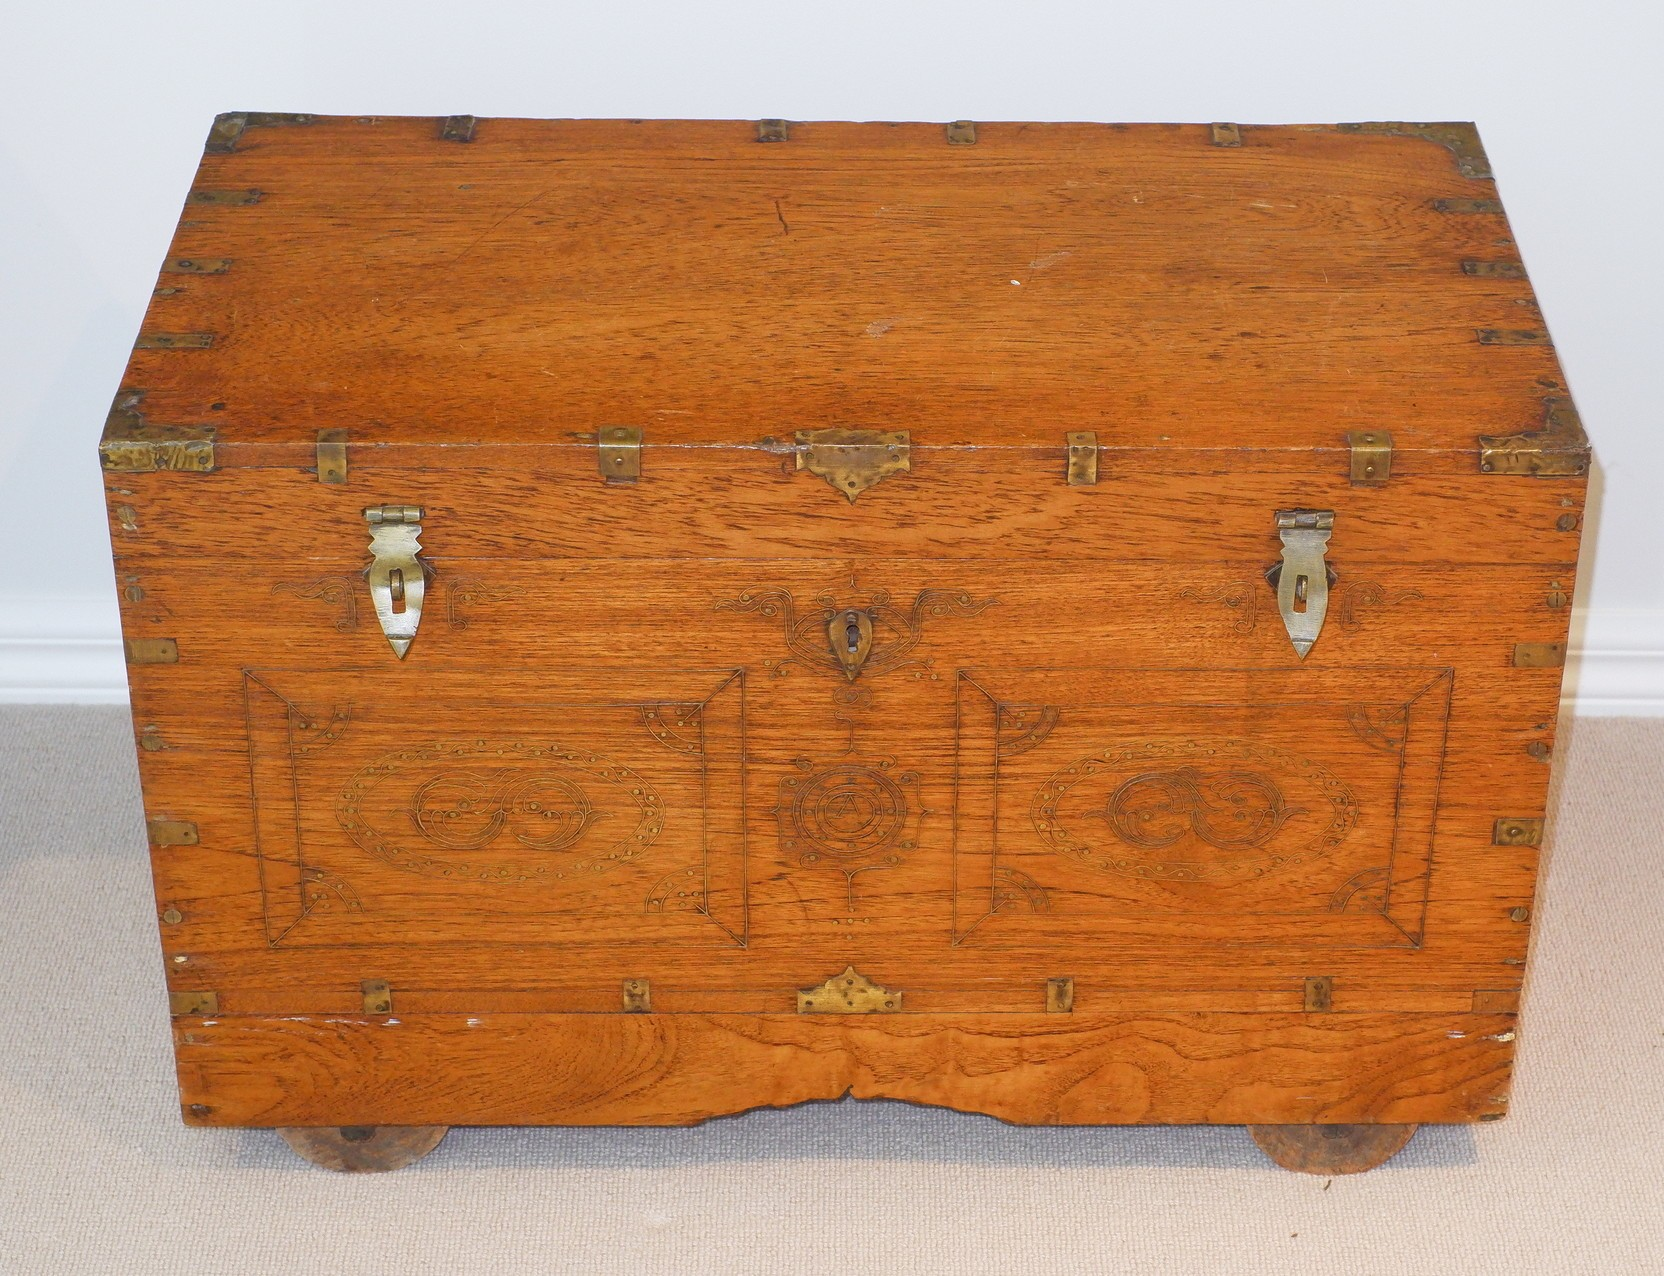 'Antique Burmese Teak Actors Chest with Interior Prayer Shrine'